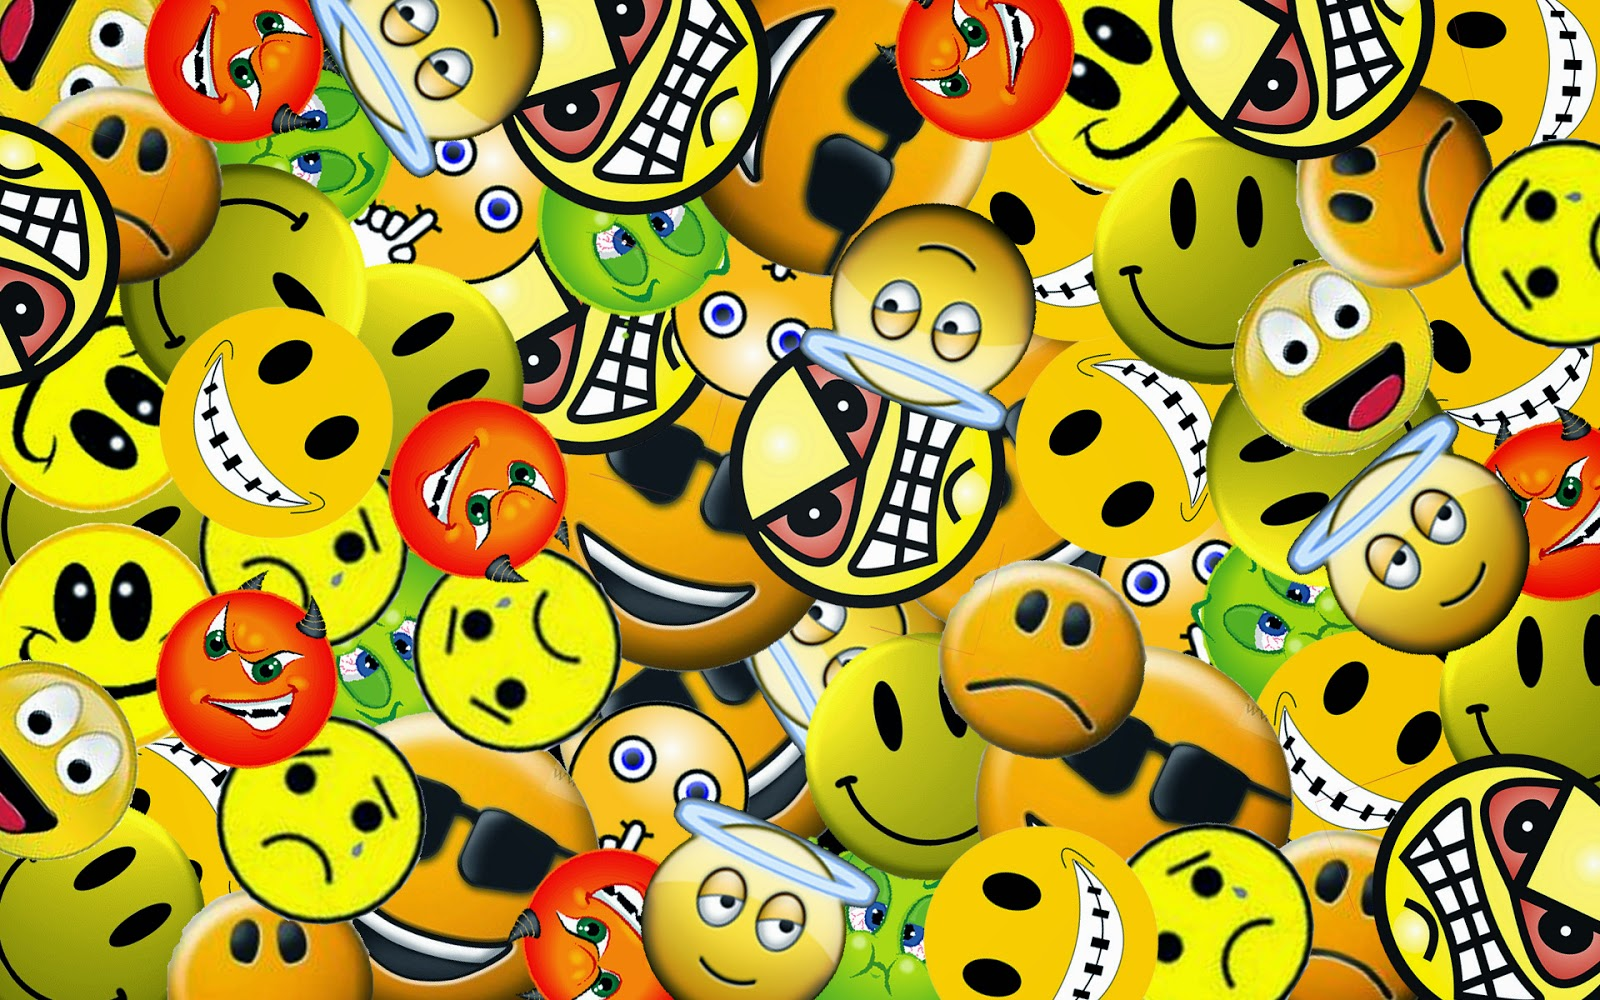 smiley face background hd wallpaper for mobile facebook free download